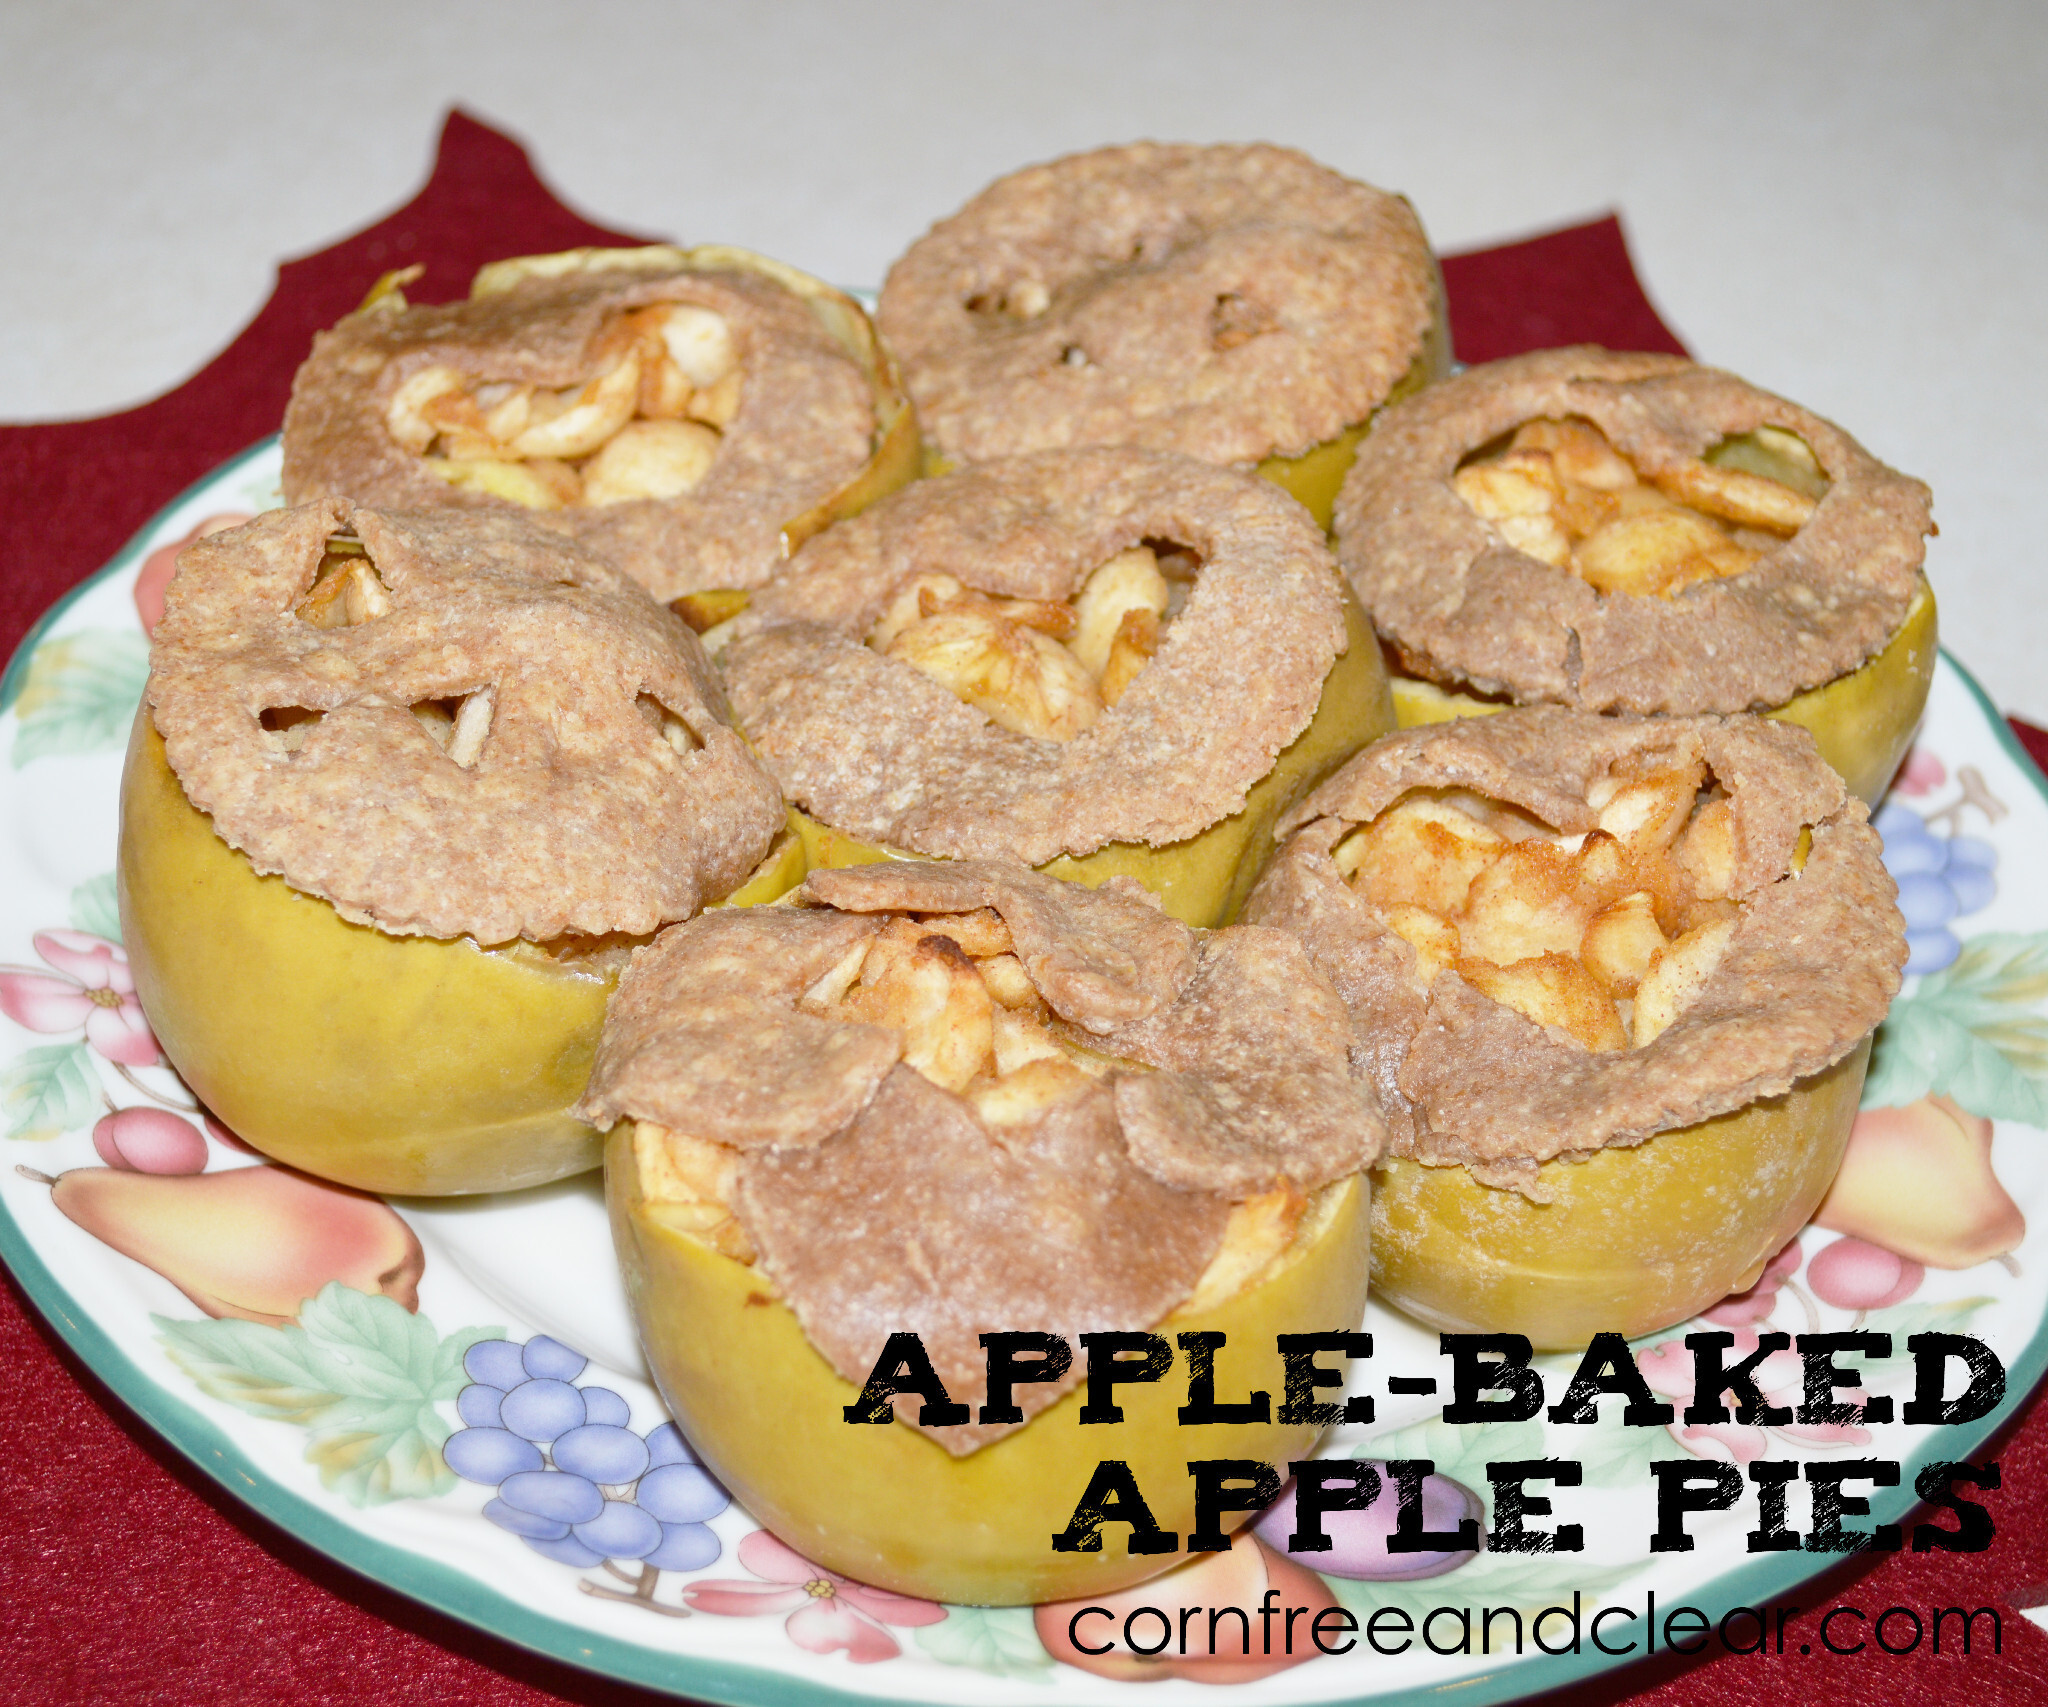 APPLE-BAKED APPLE PIES